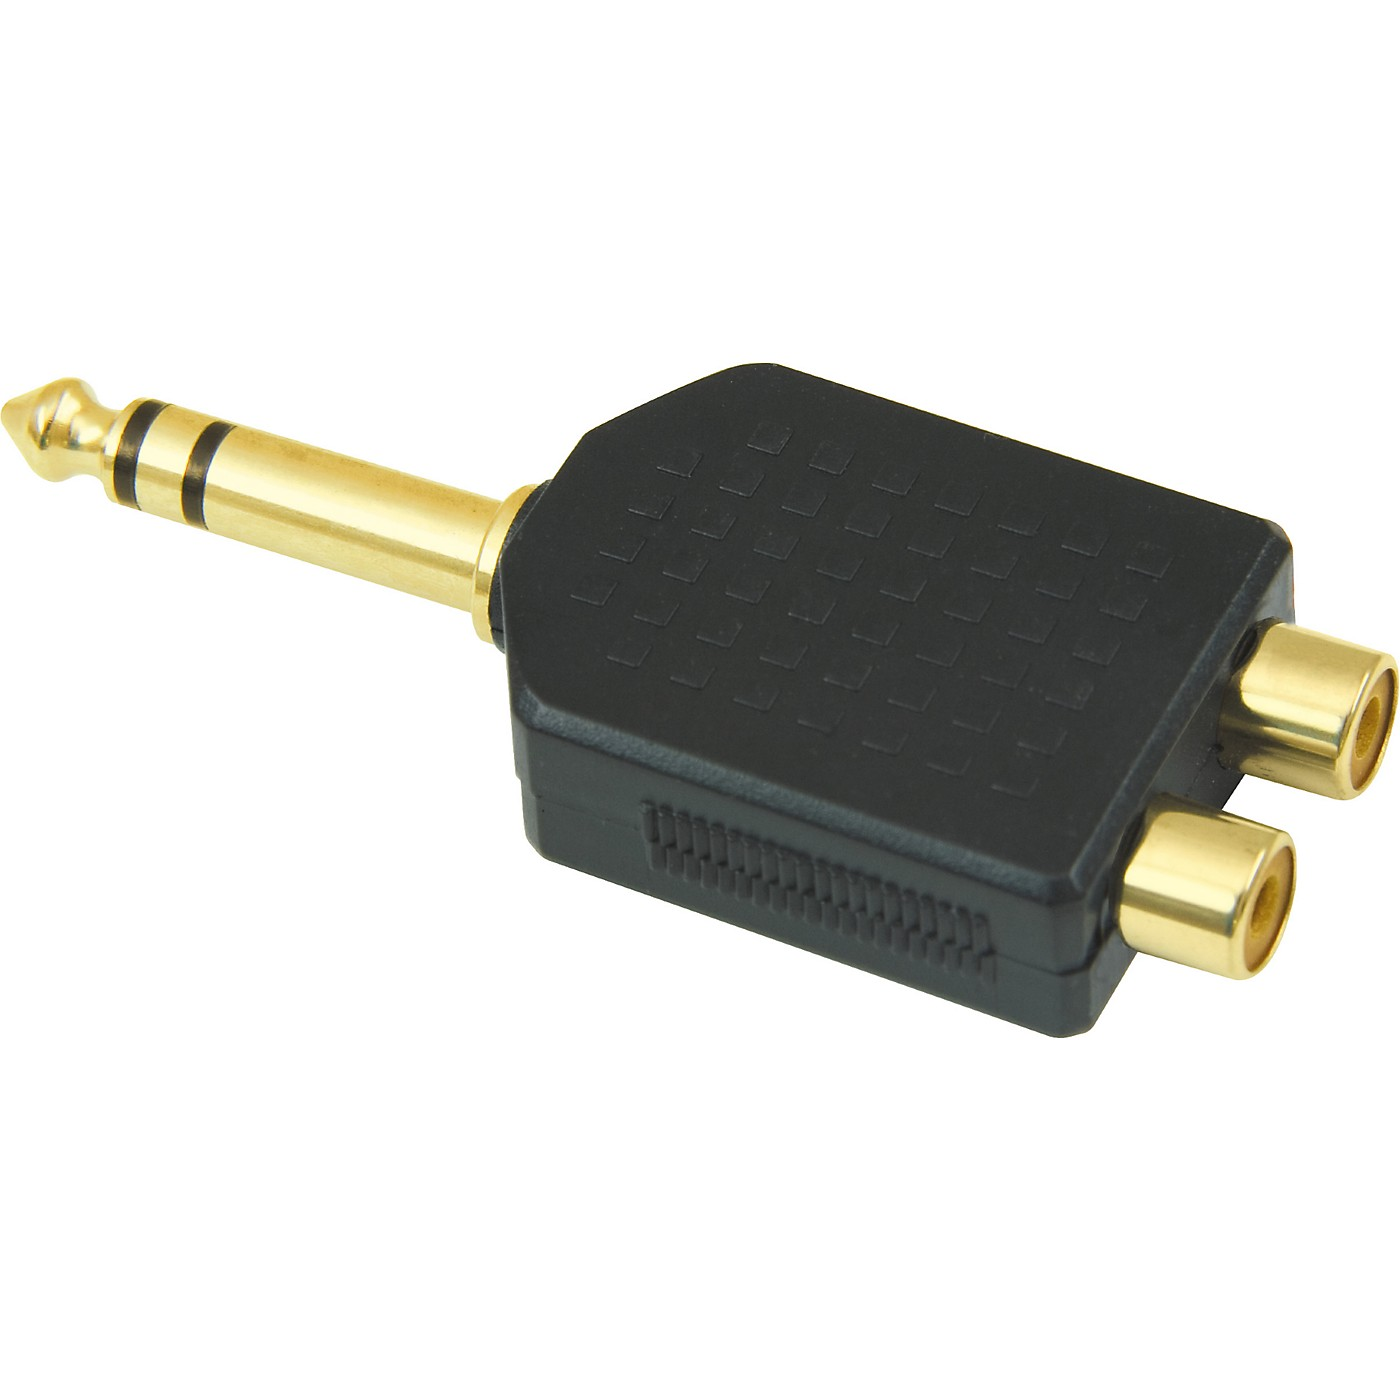 American Recorder Technologies 1/4 inch Male Stereo to 2 RCA Female Adapter thumbnail